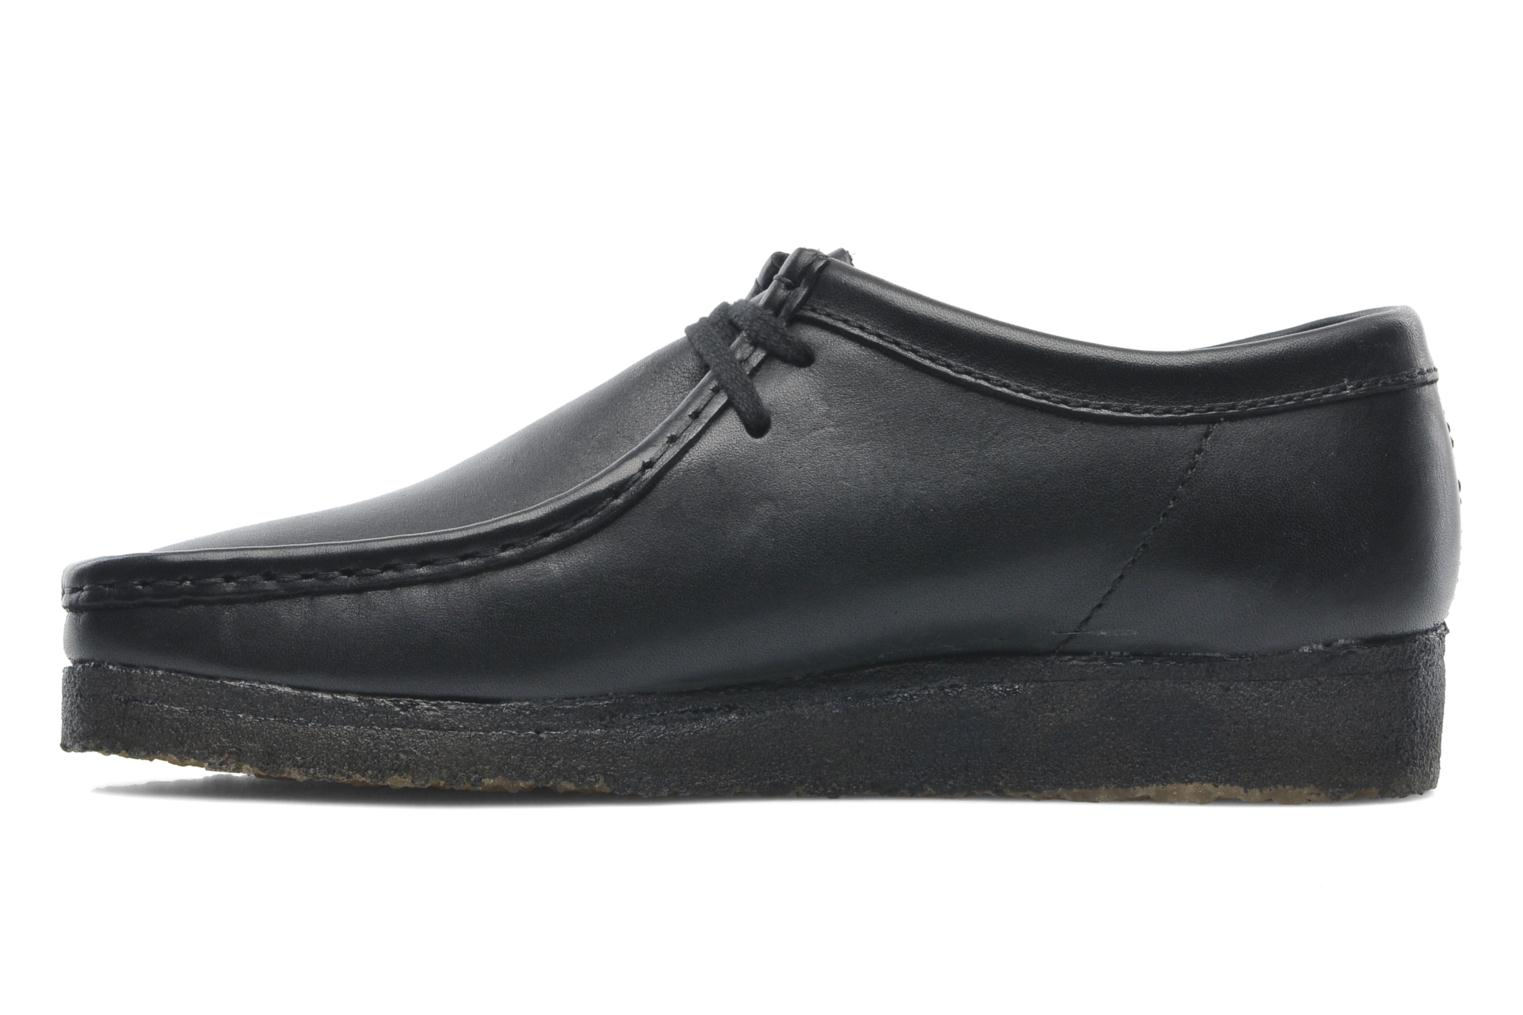 Wallabee M Black leather